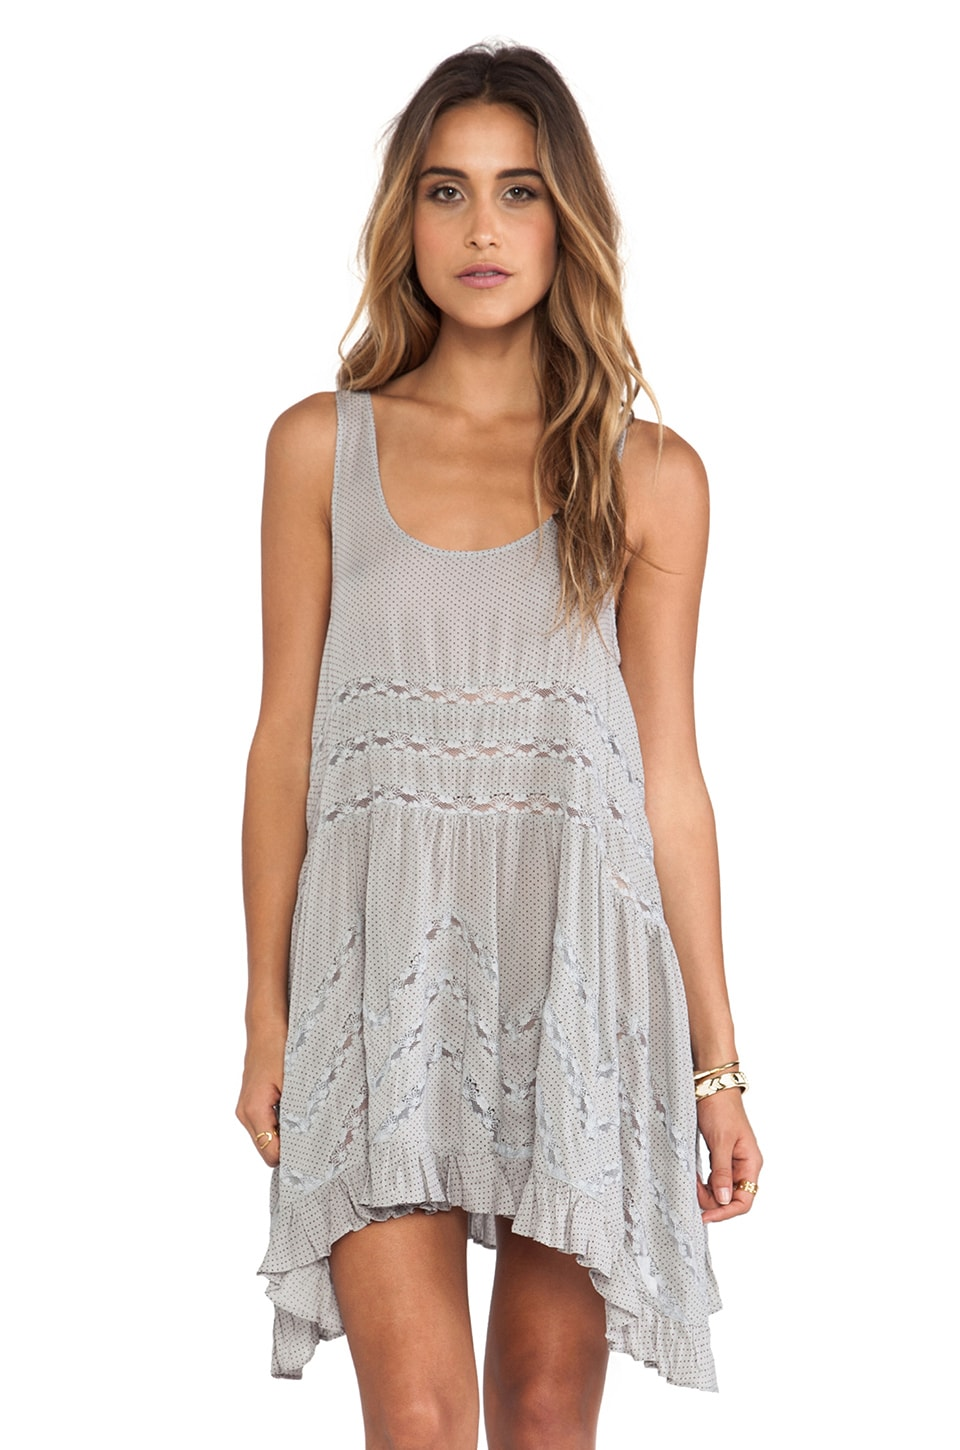 Free People Voile and Lace Trapeze Slip in Concrete Combo